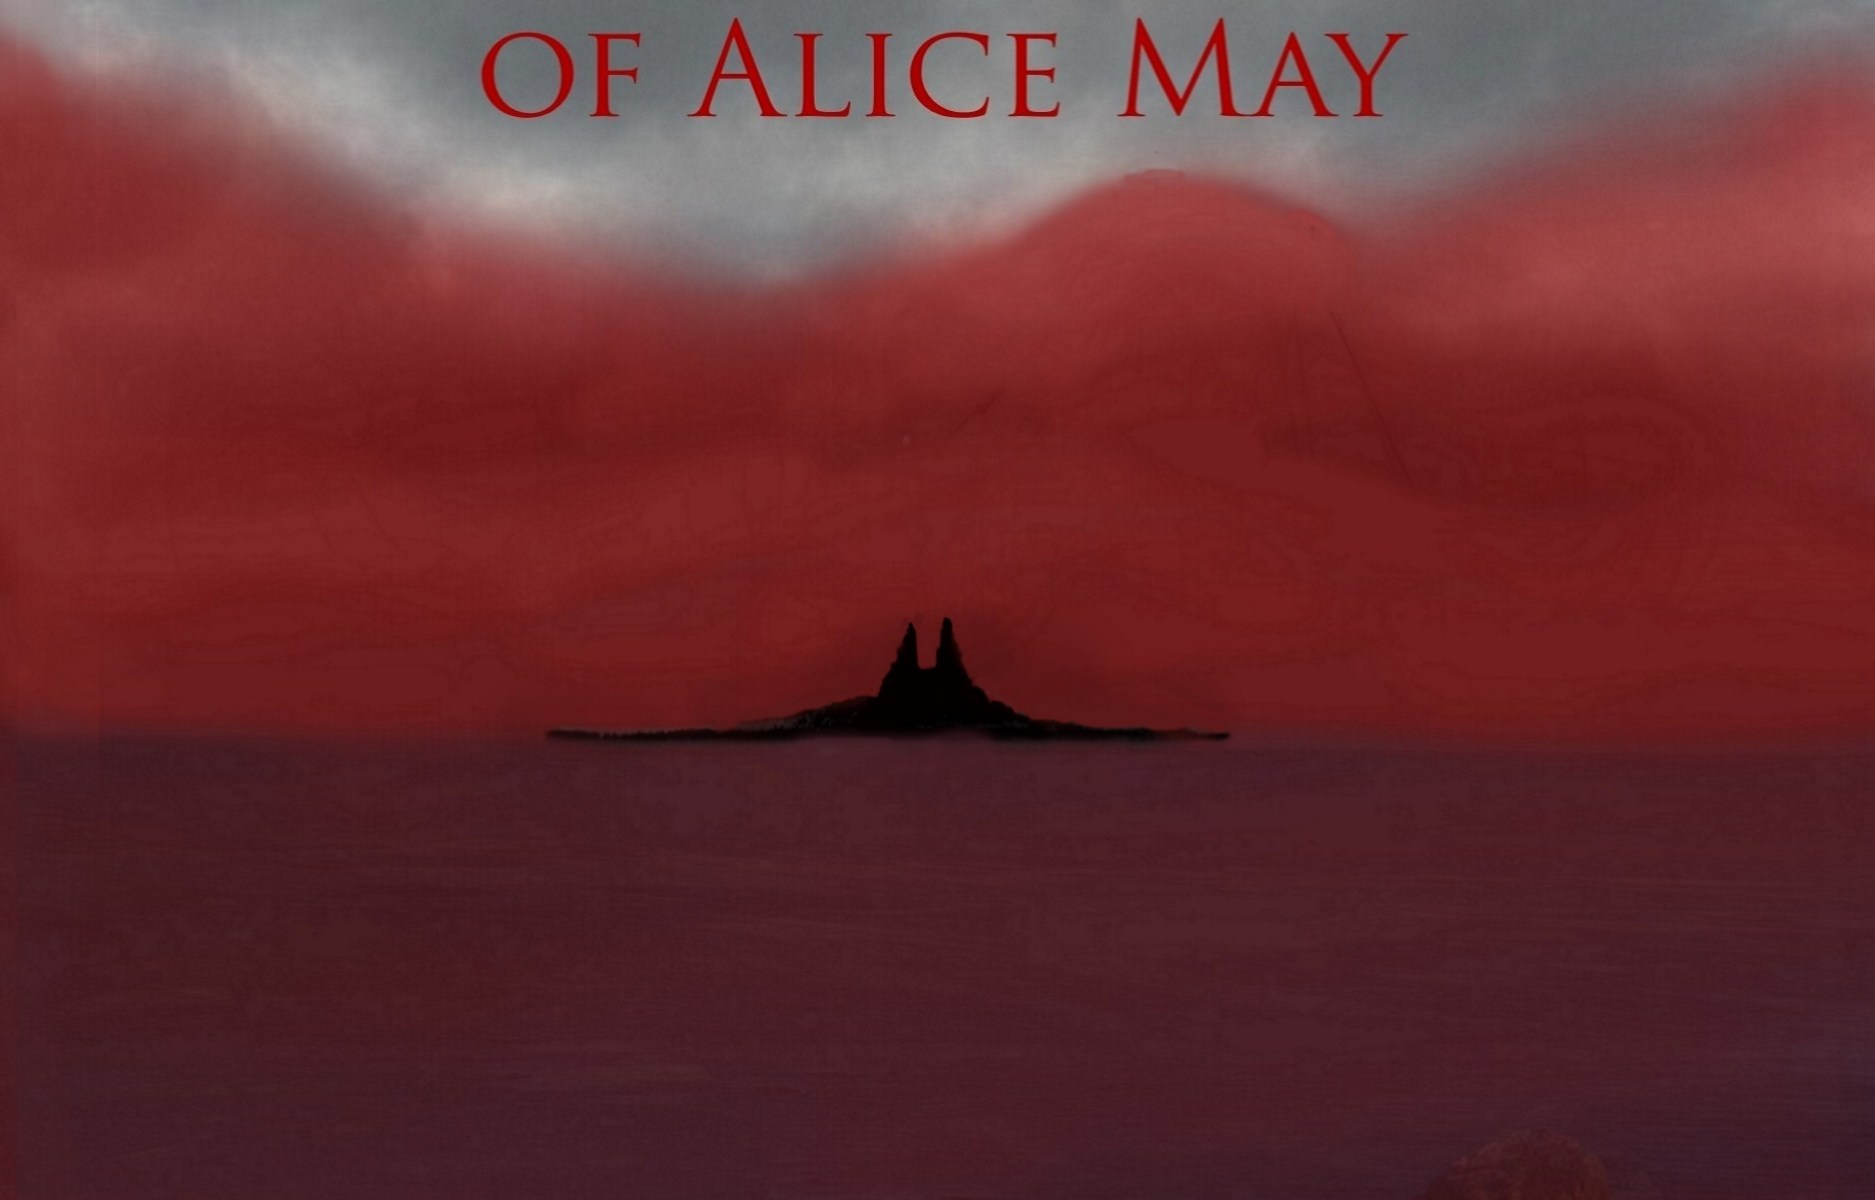 The Haunting of Alice May by Tony Lee Moral Cover reveal   Alternative-Read.com